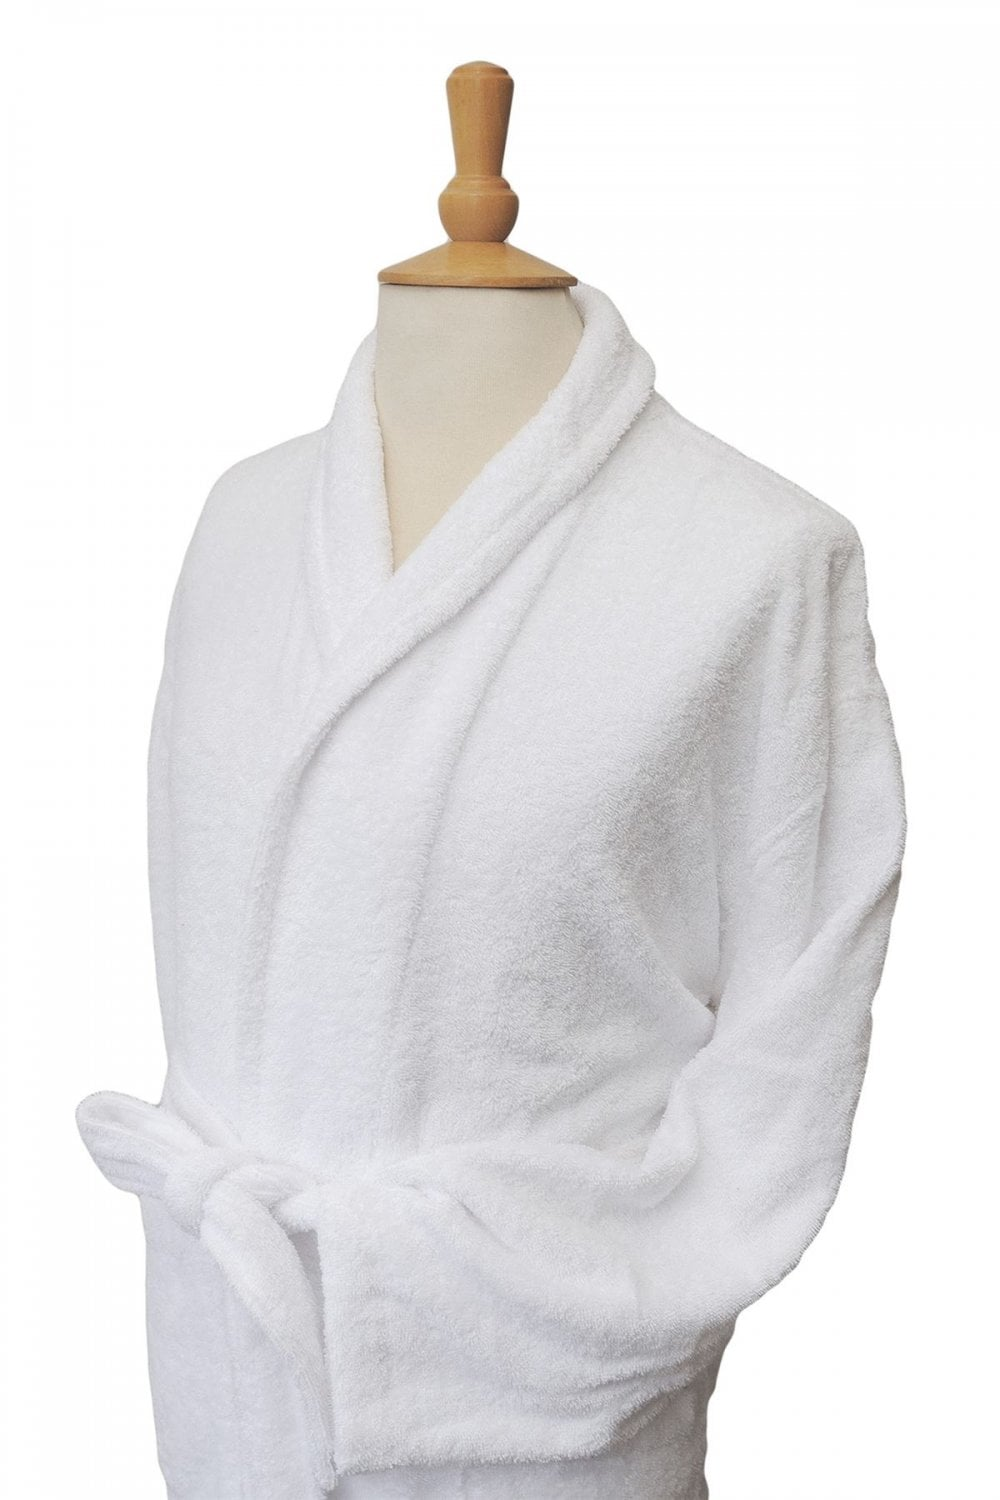 Bown of London Terry Towelling White Dressing Gown - Bath Robe - 100 ...